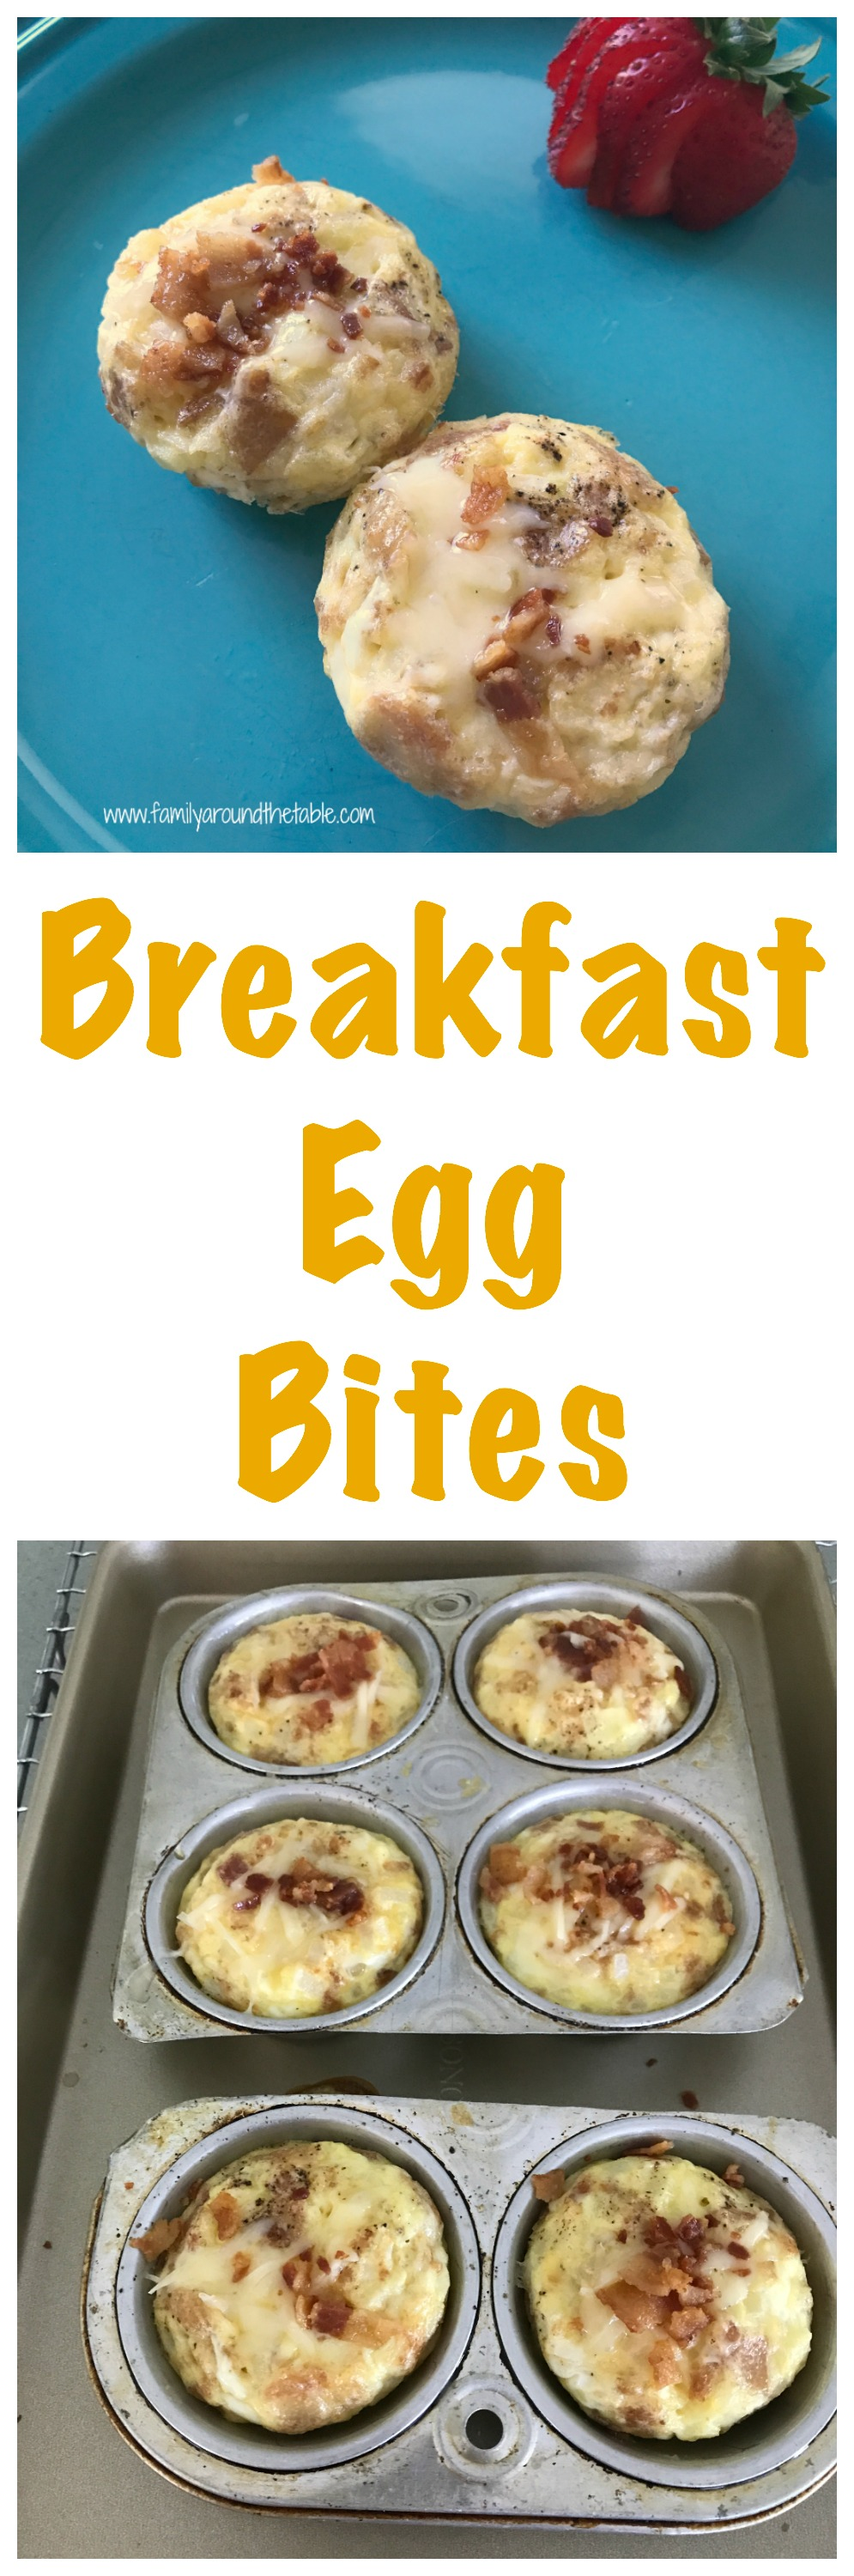 Breakfast egg bites